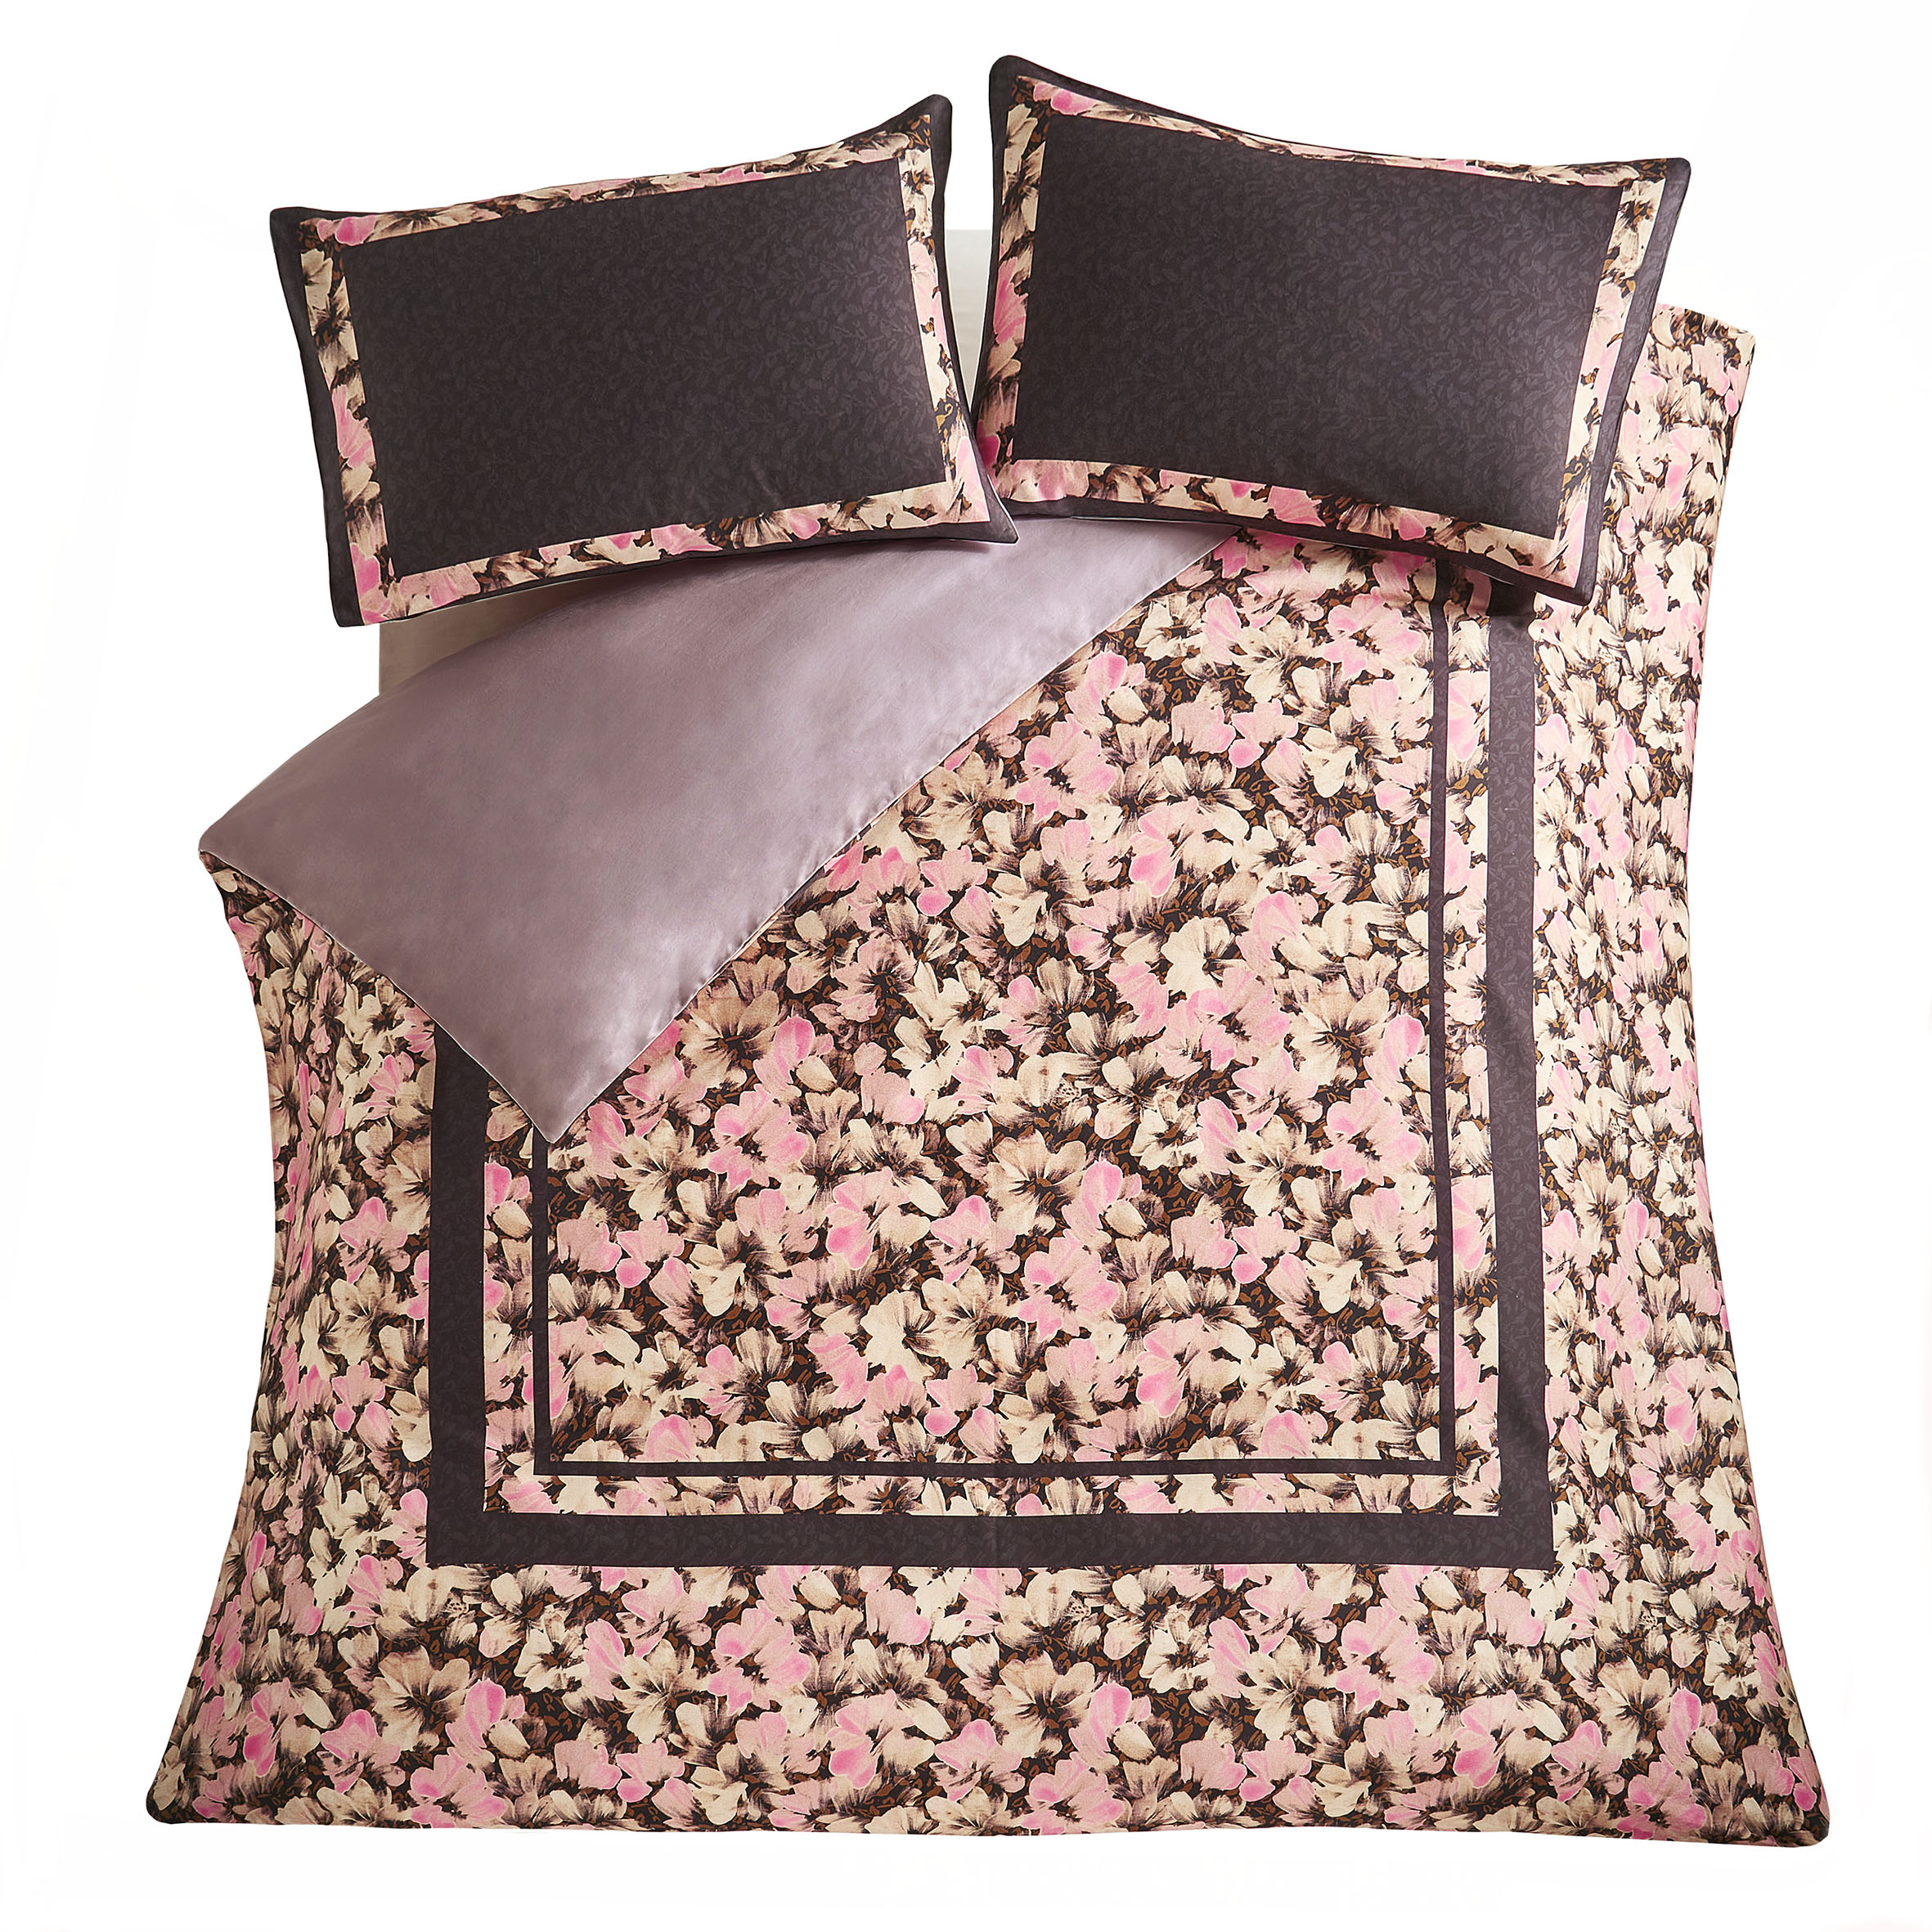 SMUDGE FLORAL PILLOW CASE PAIR - COSMO